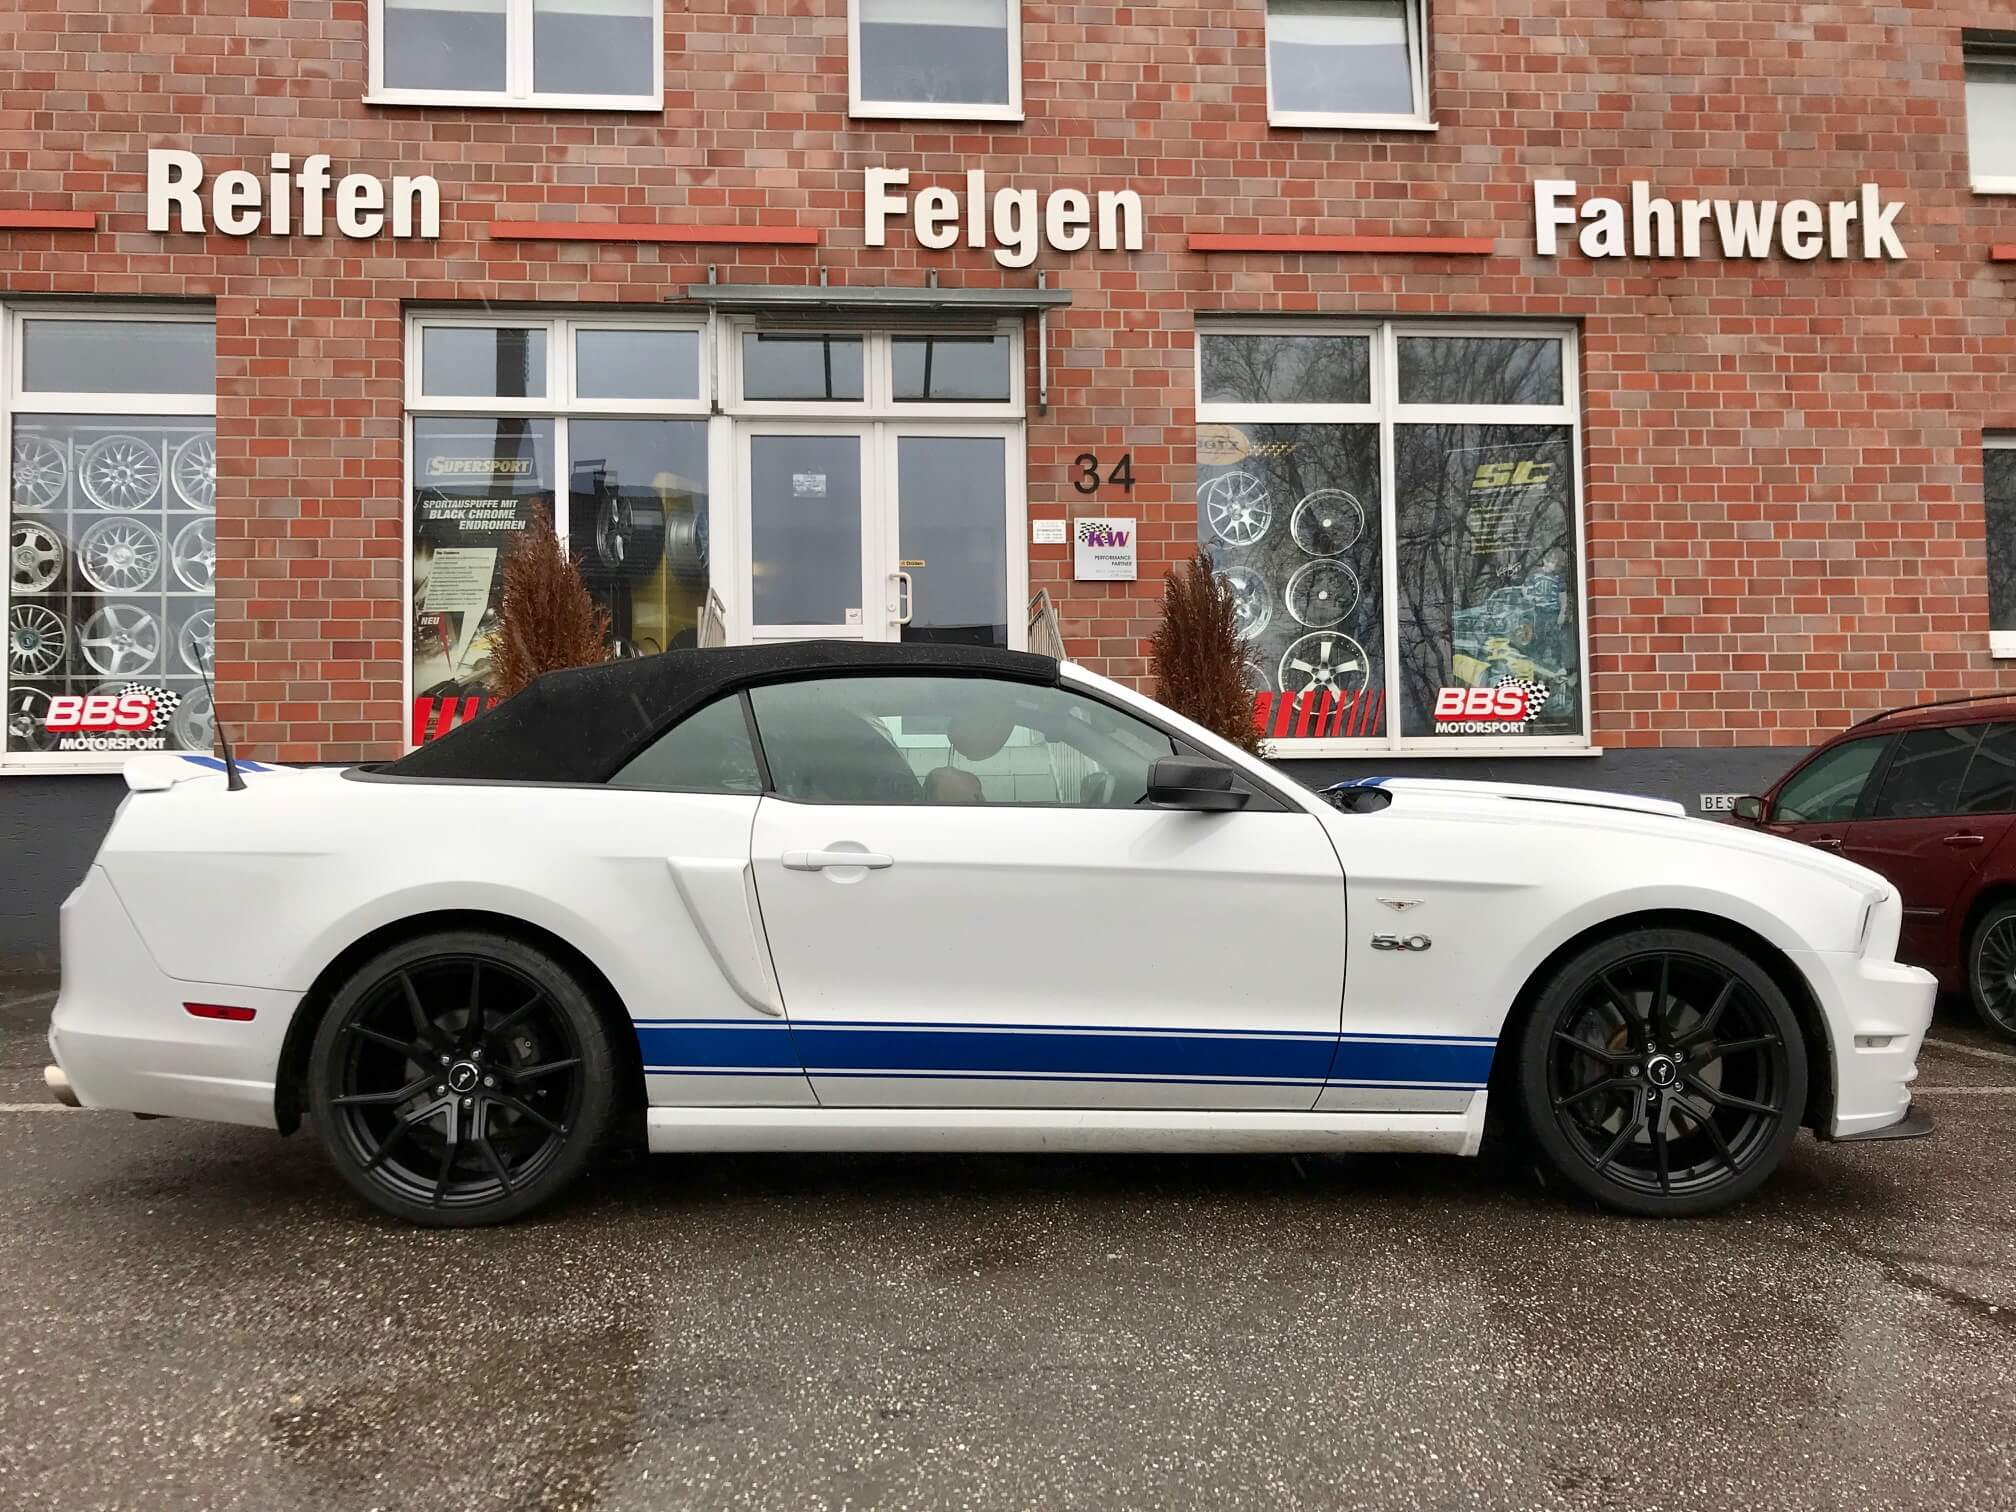 ford mustang s197 drago alufelgen by best cars and bikes. Black Bedroom Furniture Sets. Home Design Ideas